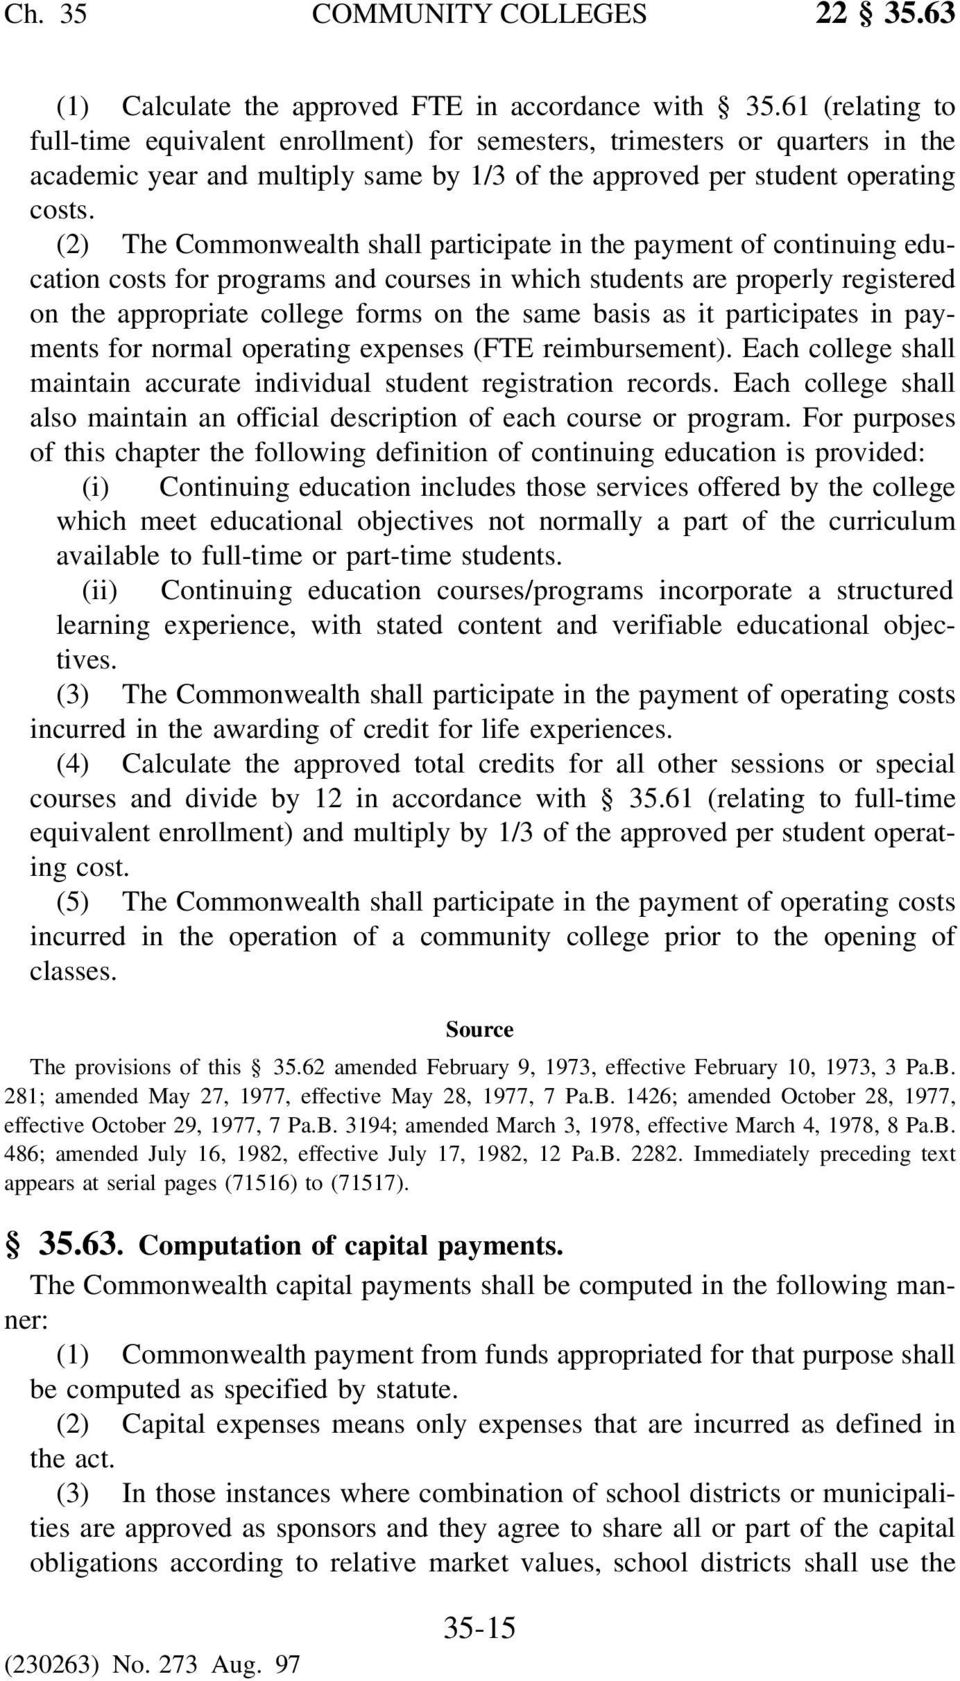 (2) The Commonwealth shall participate in the payment of continuing education costs for programs and courses in which students are properly registered on the appropriate college forms on the same